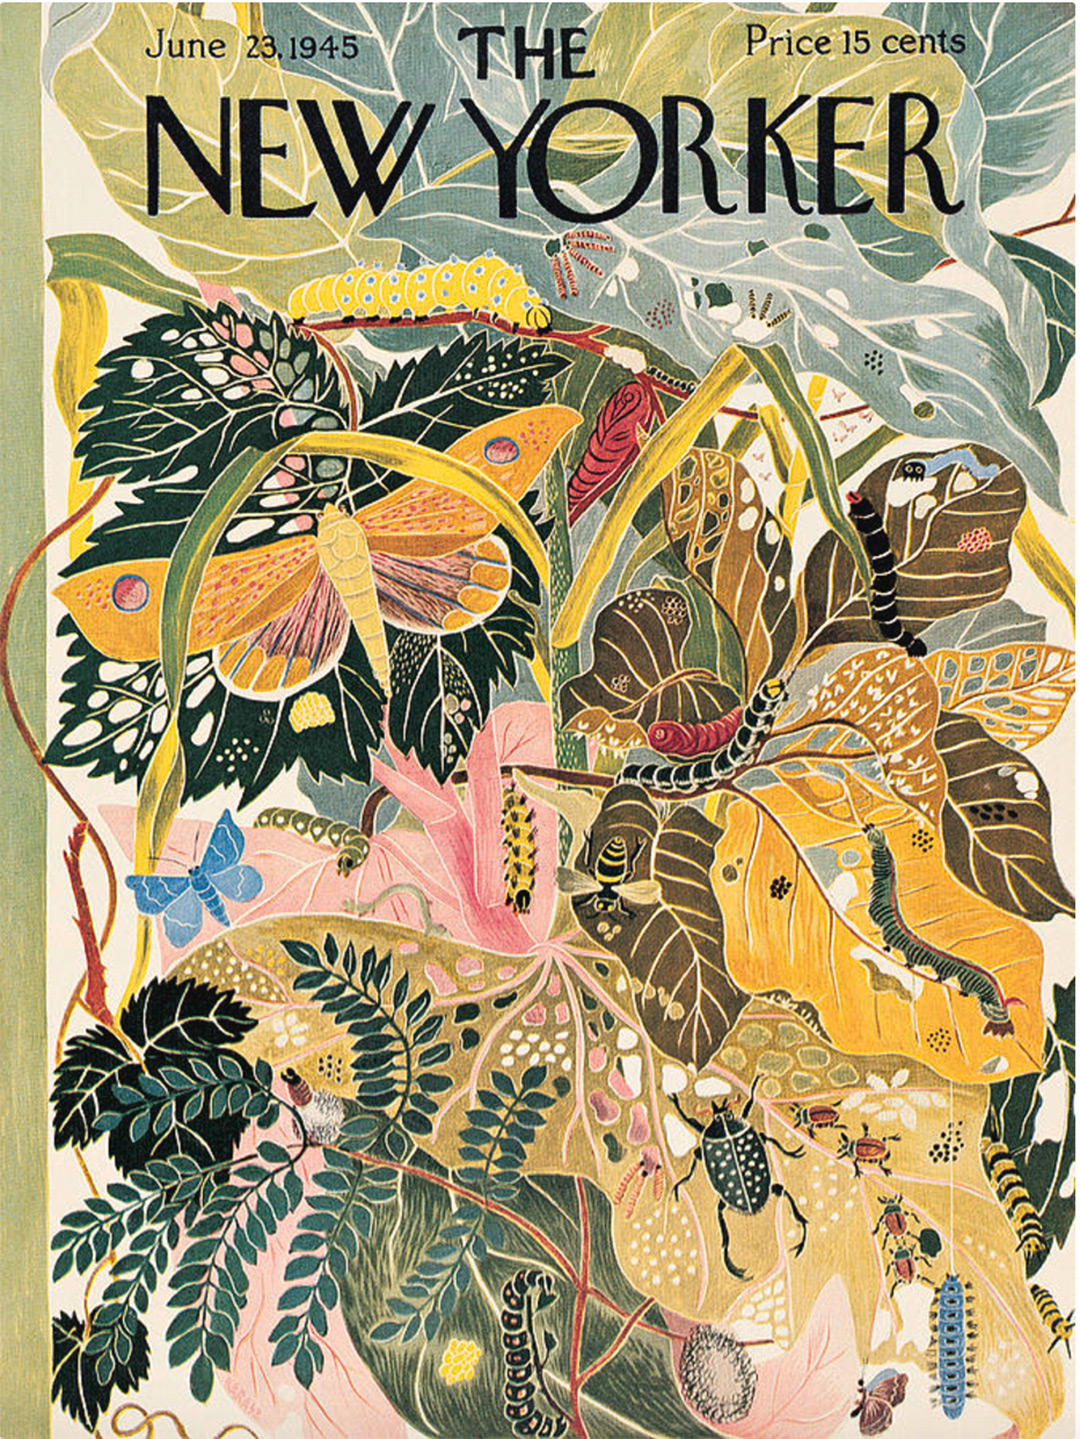 Vintage New Yorker covers